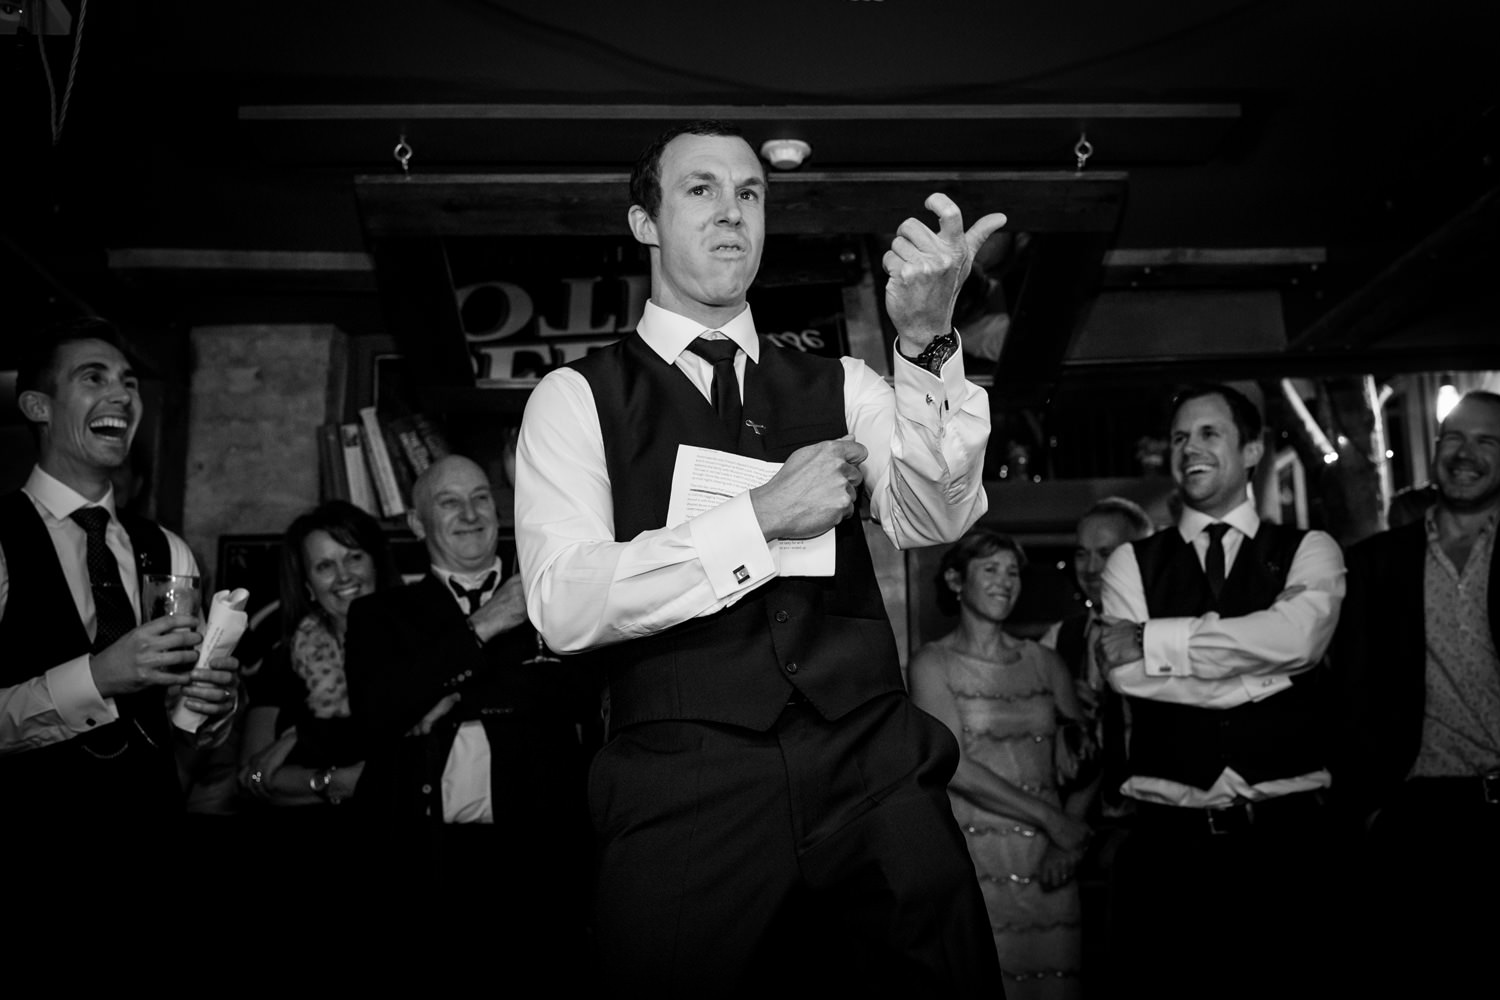 The-Bell-Inn-Ticehurst-Wedding-Photographer30